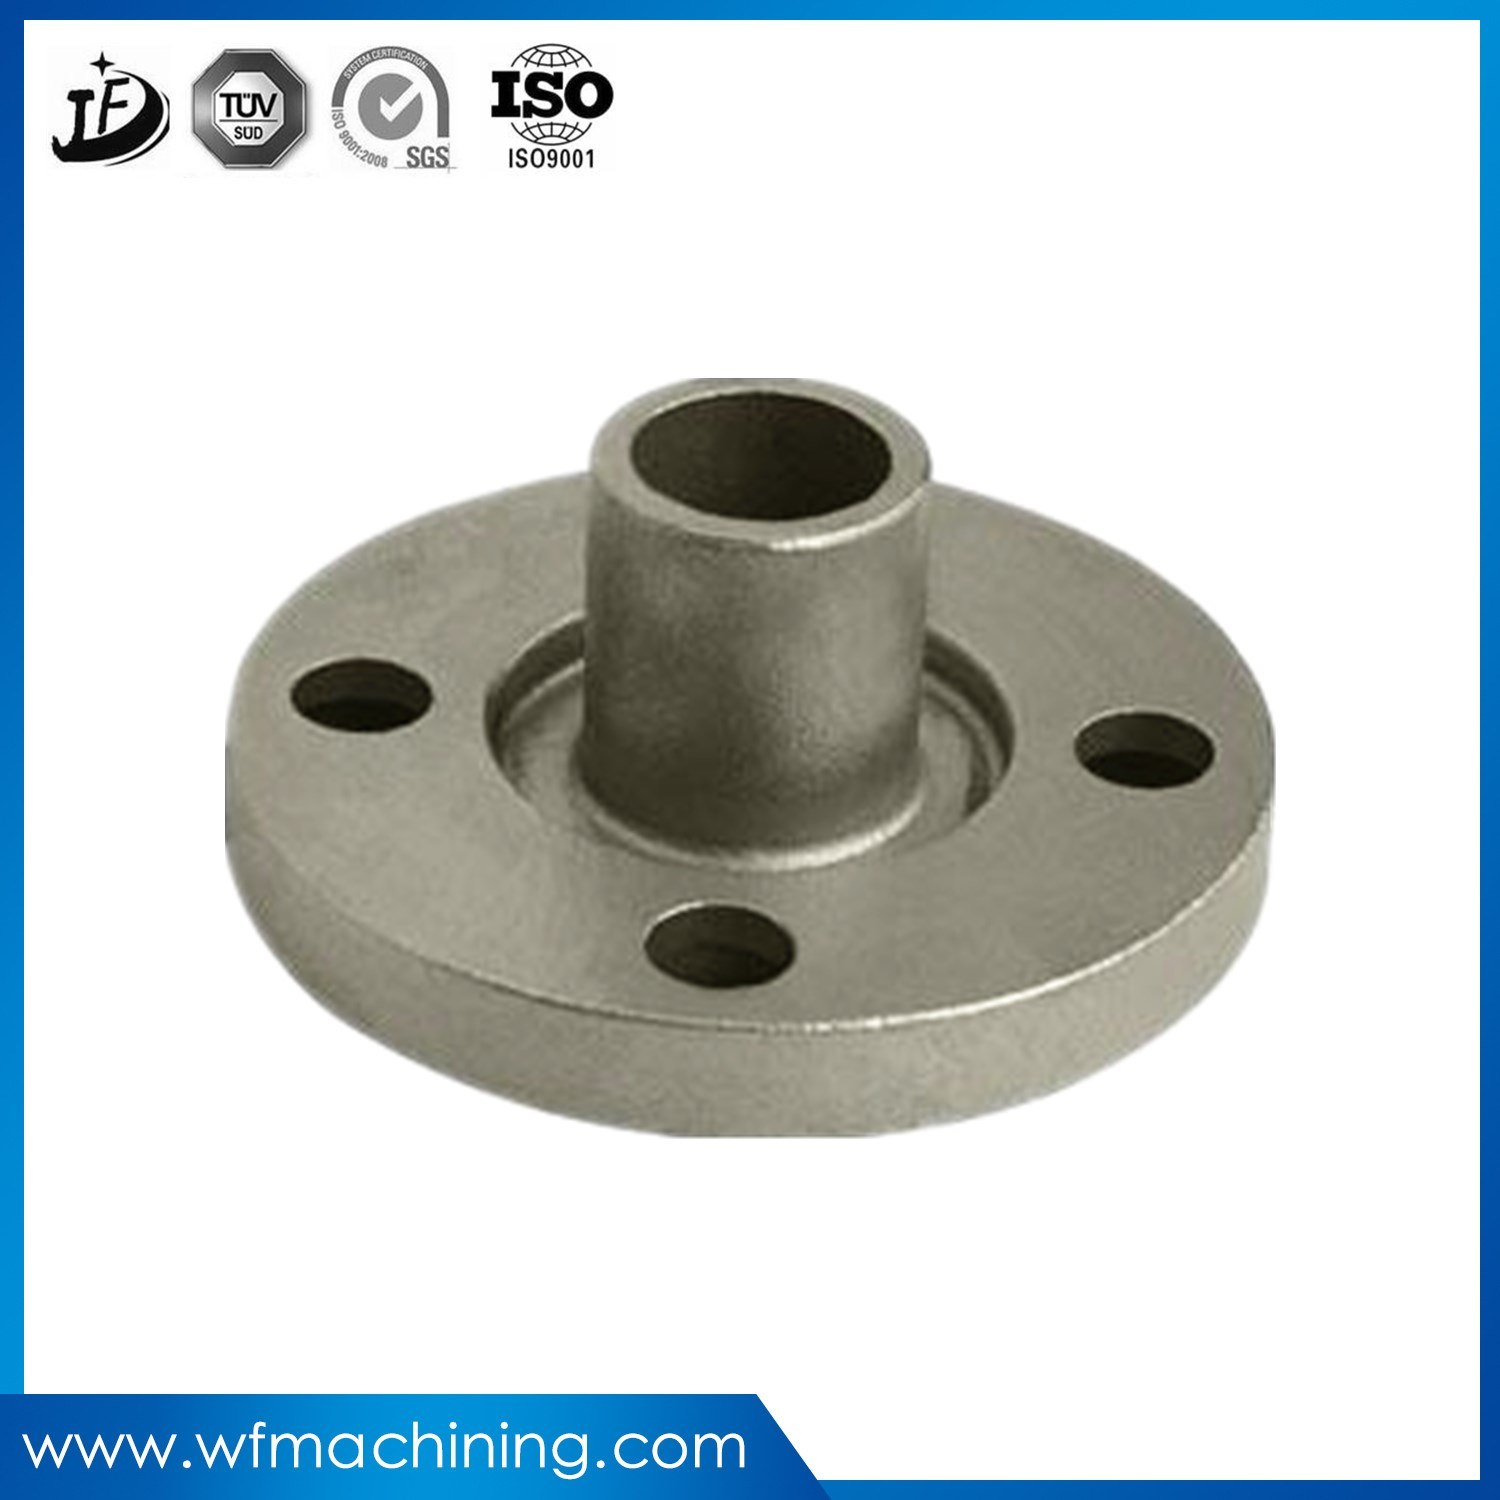 OEM Forging Stainless Steel Forging Carbon Steel Forging Crankshaft with Forged Process